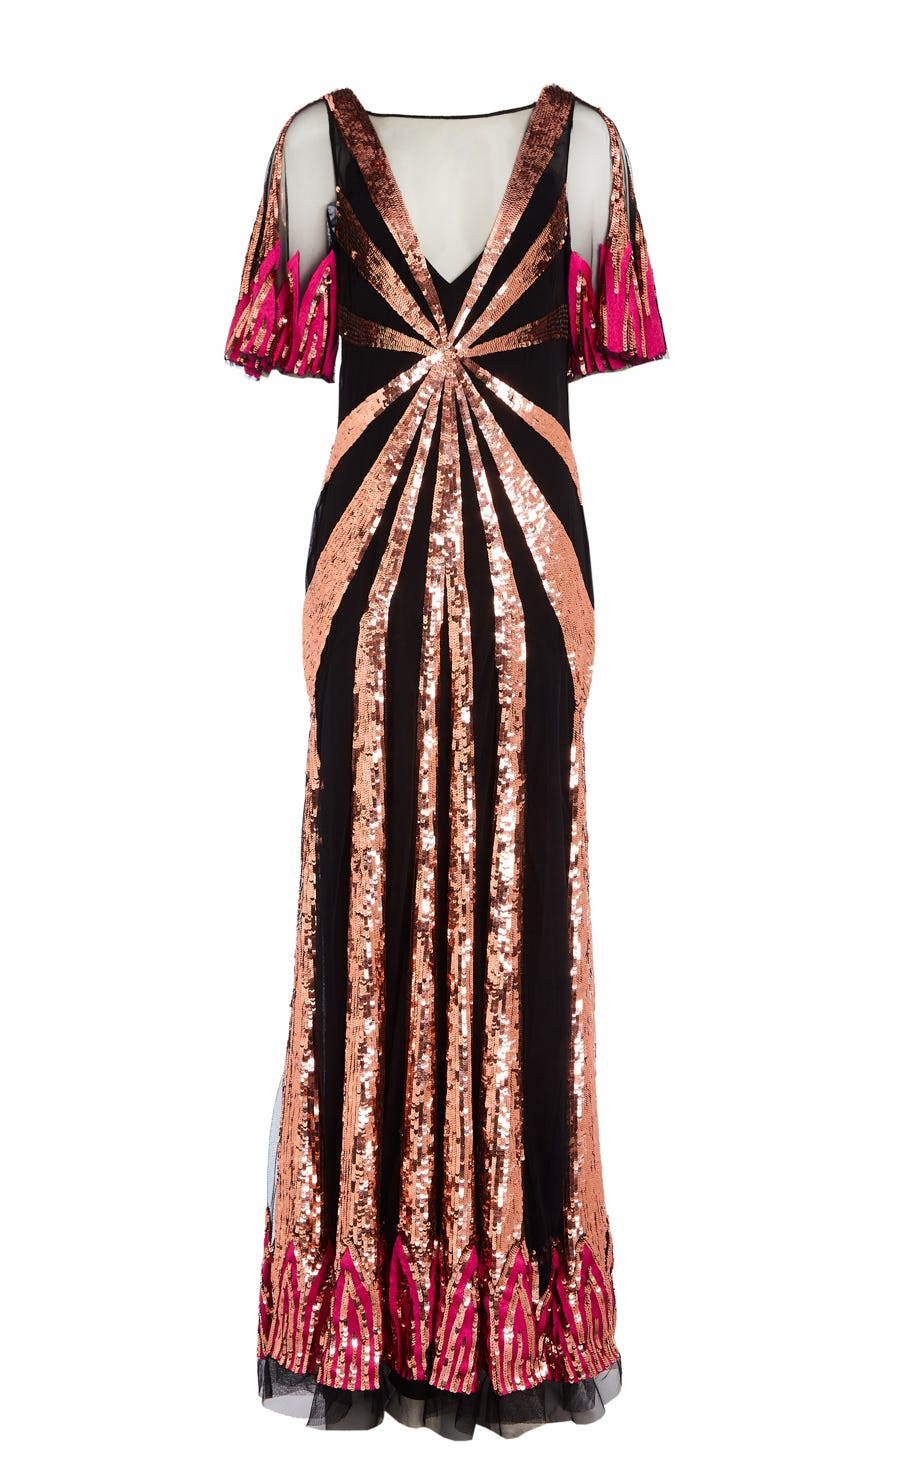 Sycamore Sleeved Gown